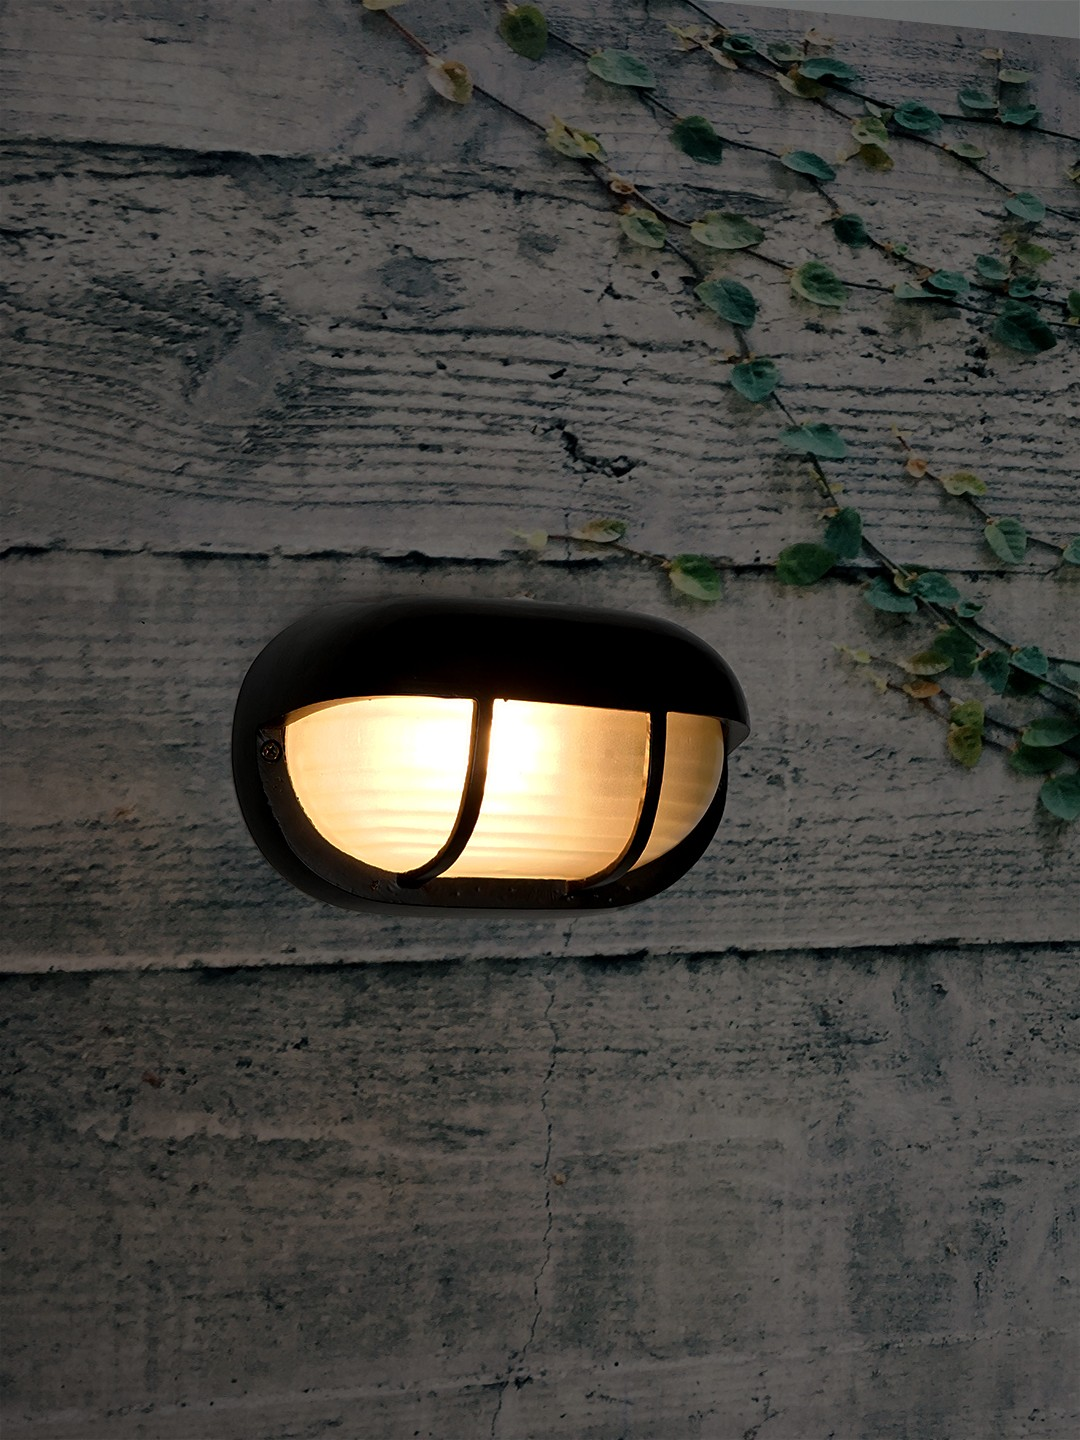 Classic Rounded Black Outdoor Bulkhead Light